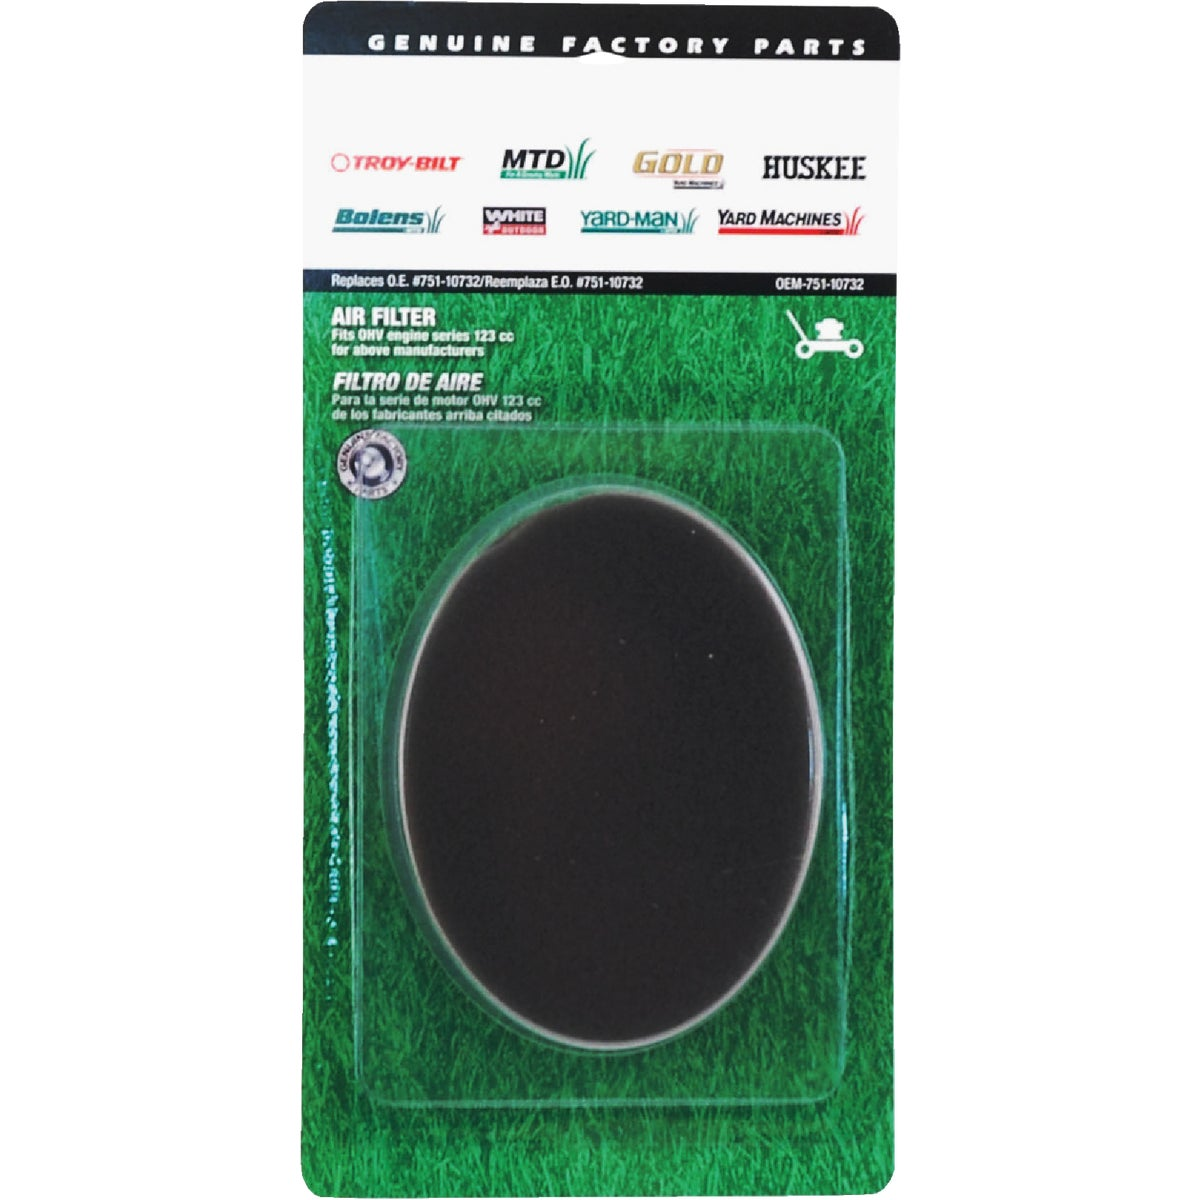 MTD OHV AIR FILTER - OEM-751-10732 by Arnold Corp